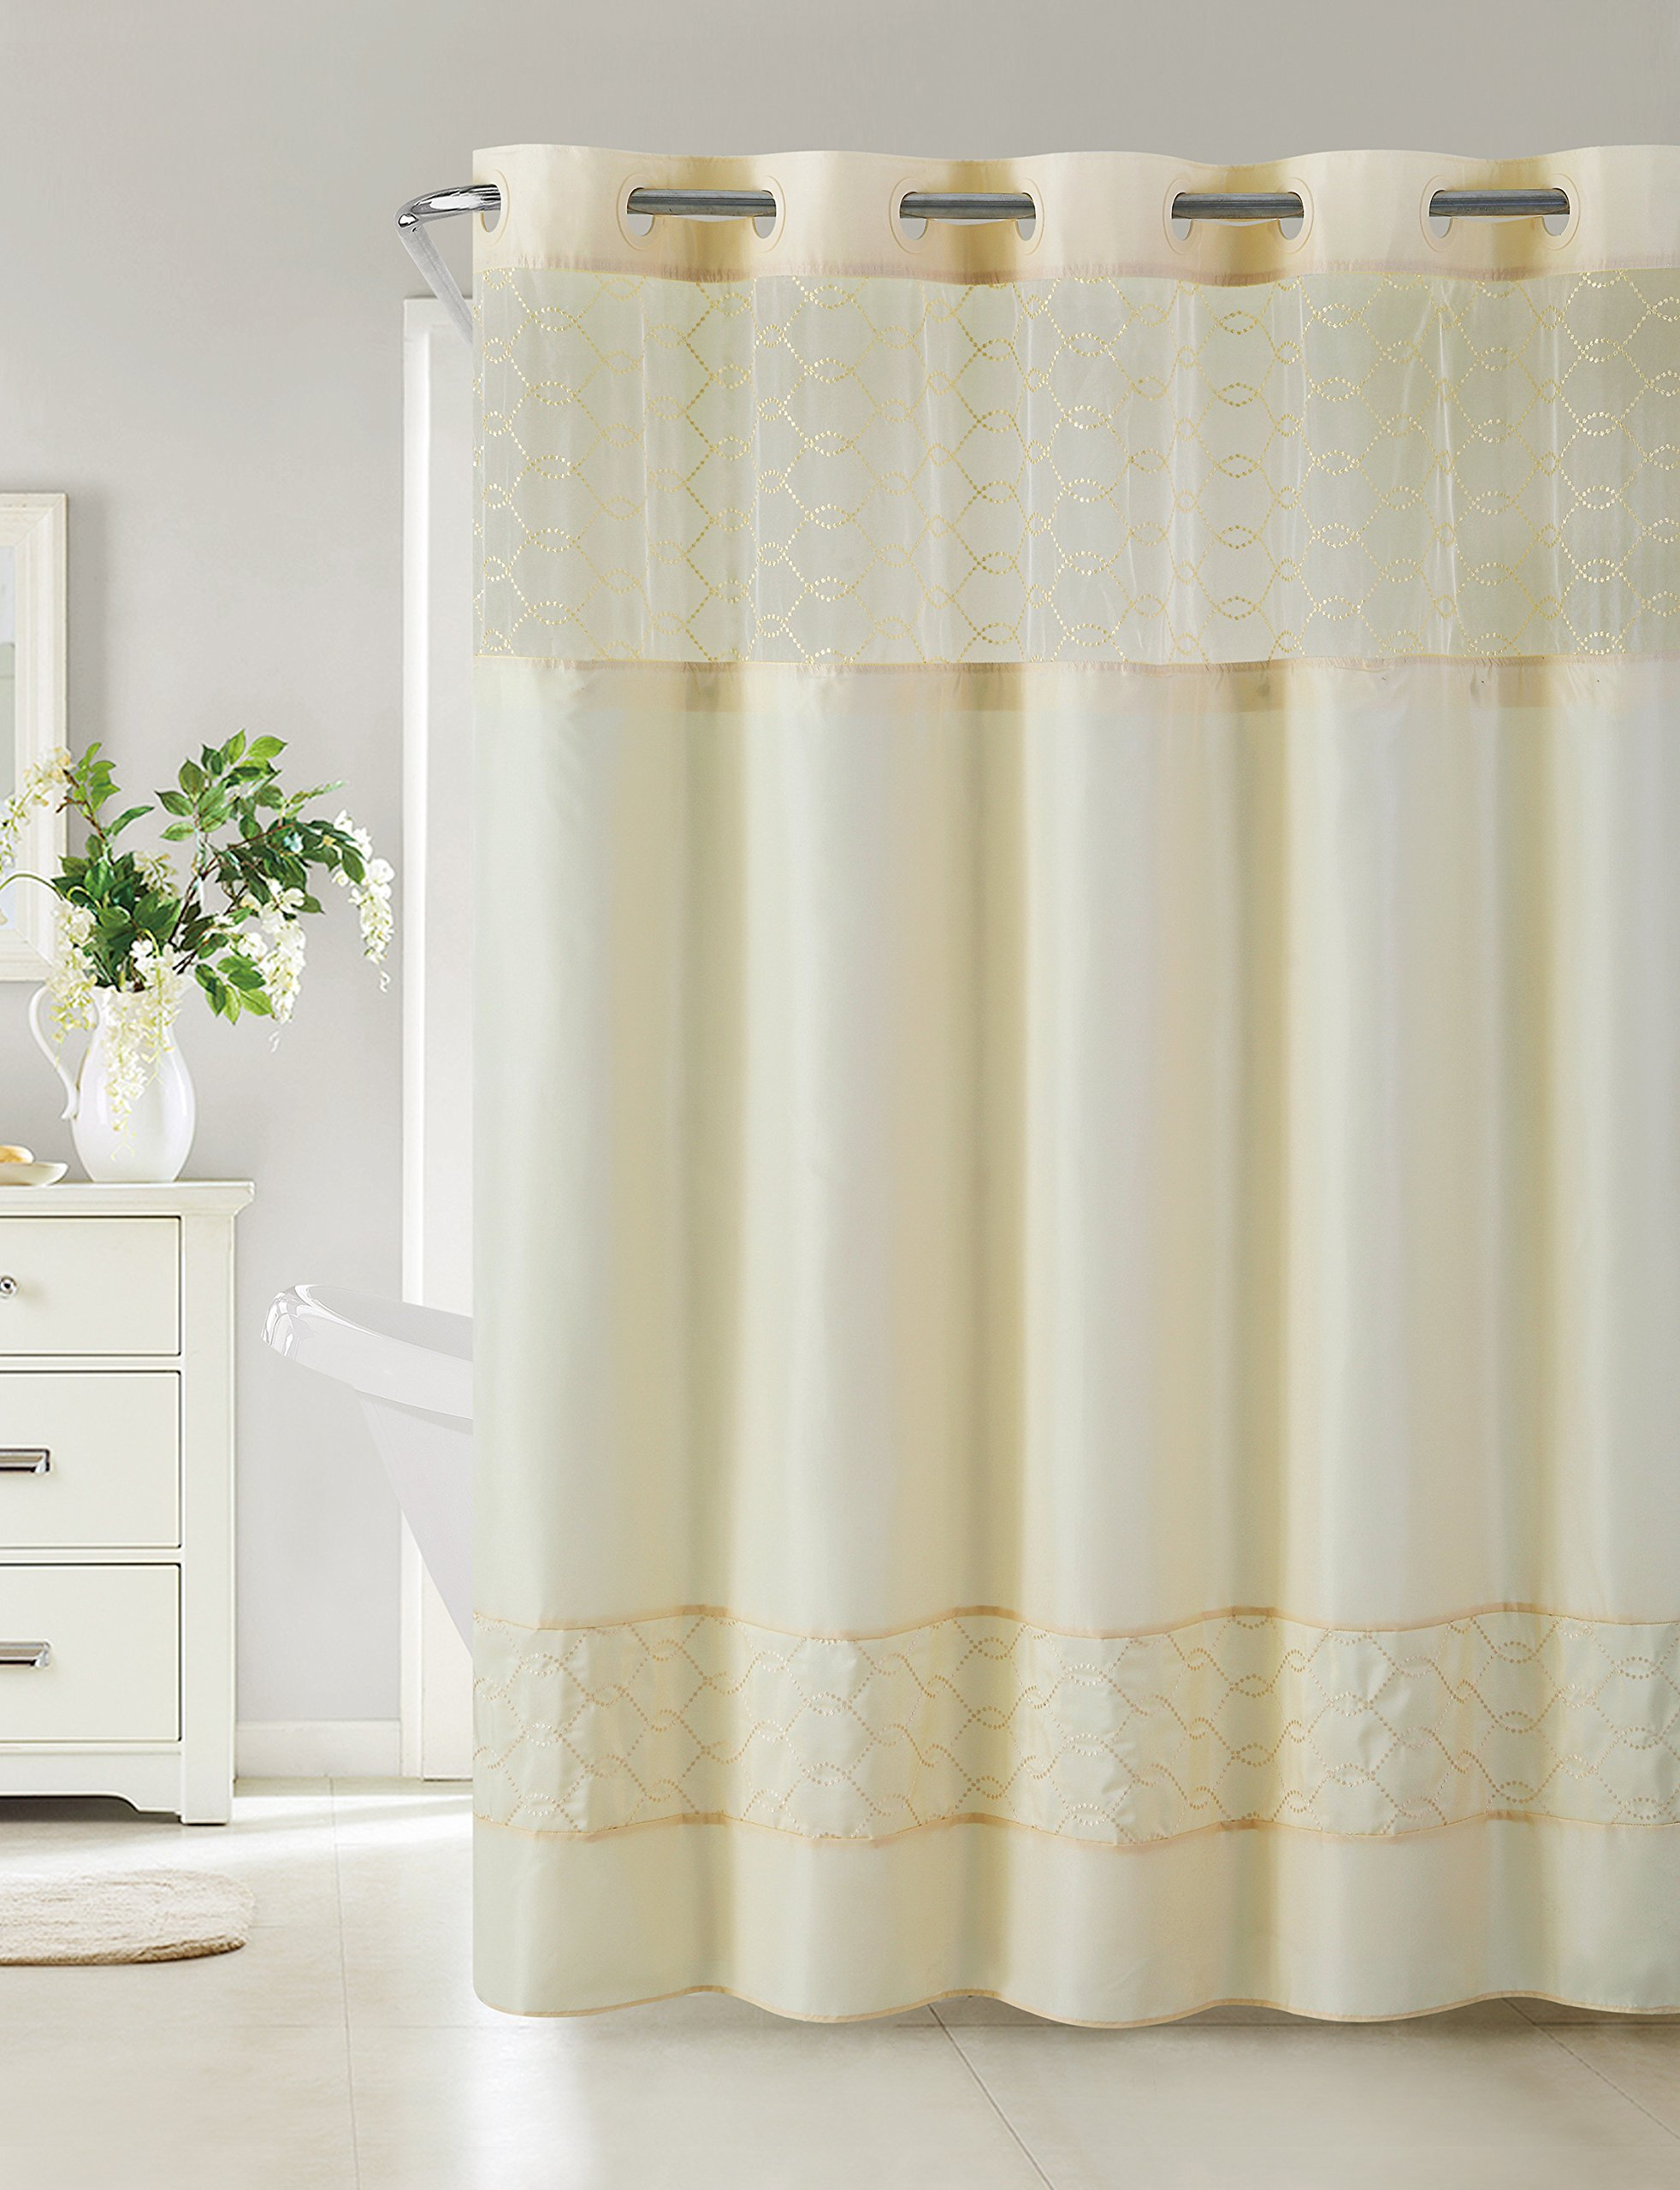 Hookless RBH40MY097 Downtown Soho Shower Curtain with Peva Liner -  Vanilla